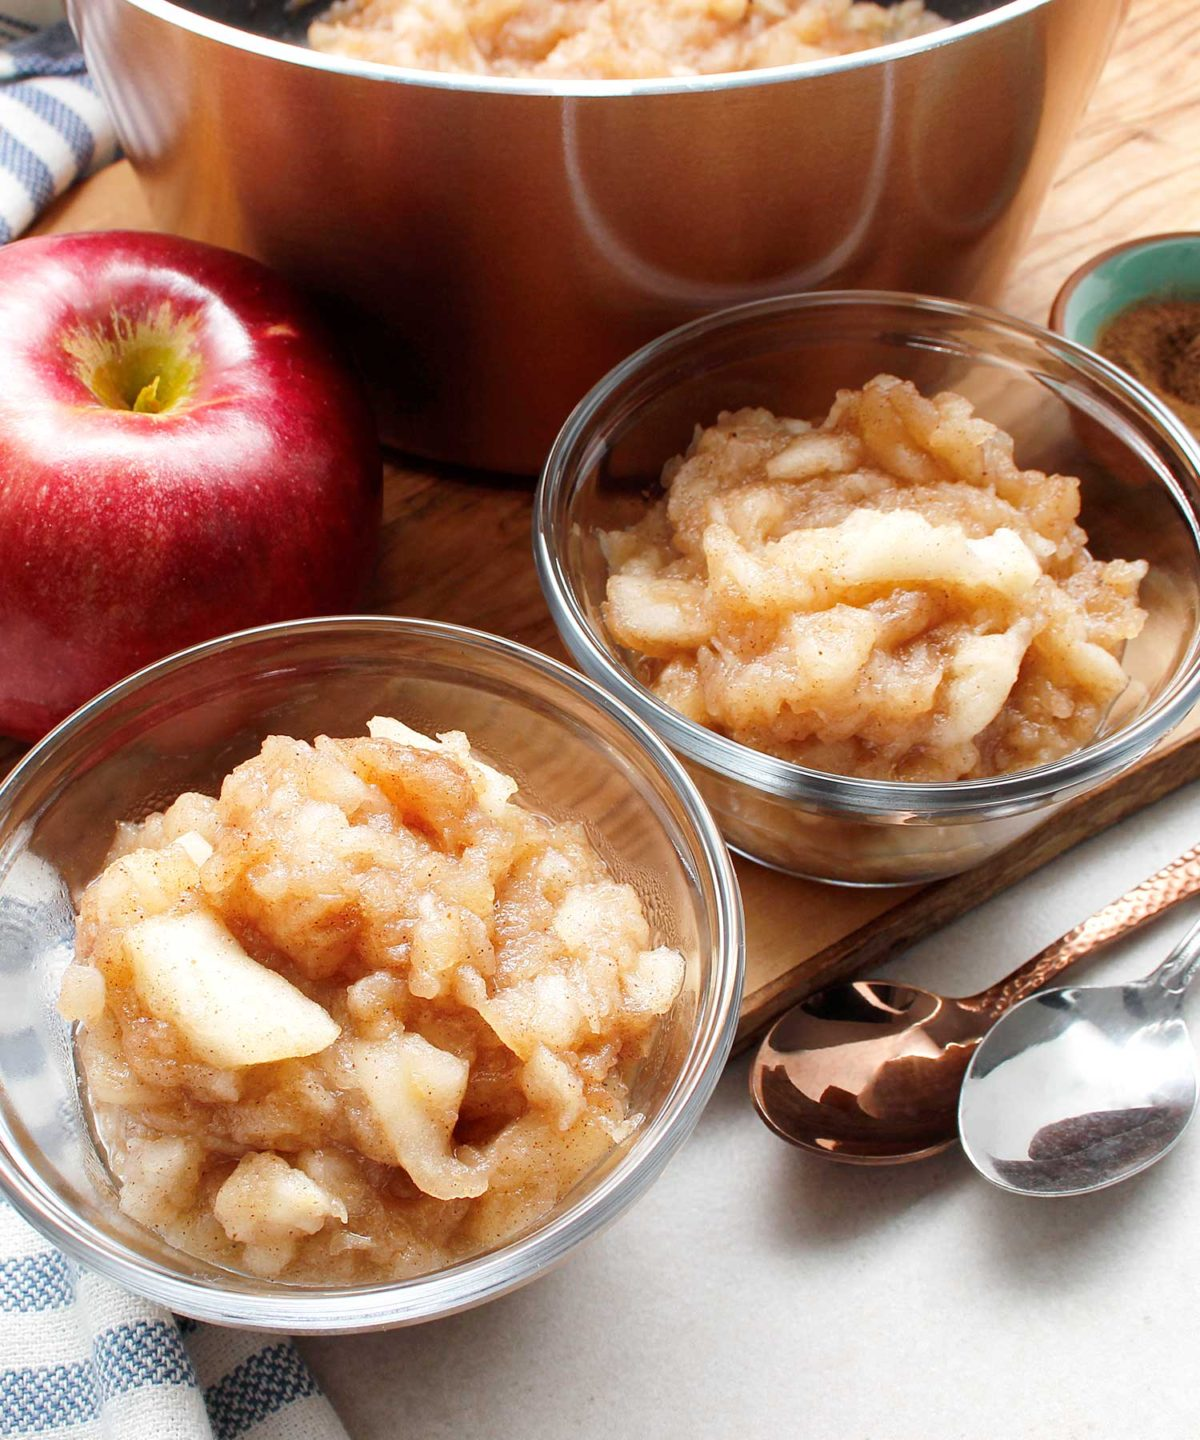 Two small glass bowls of homemade chunky style applesauce.